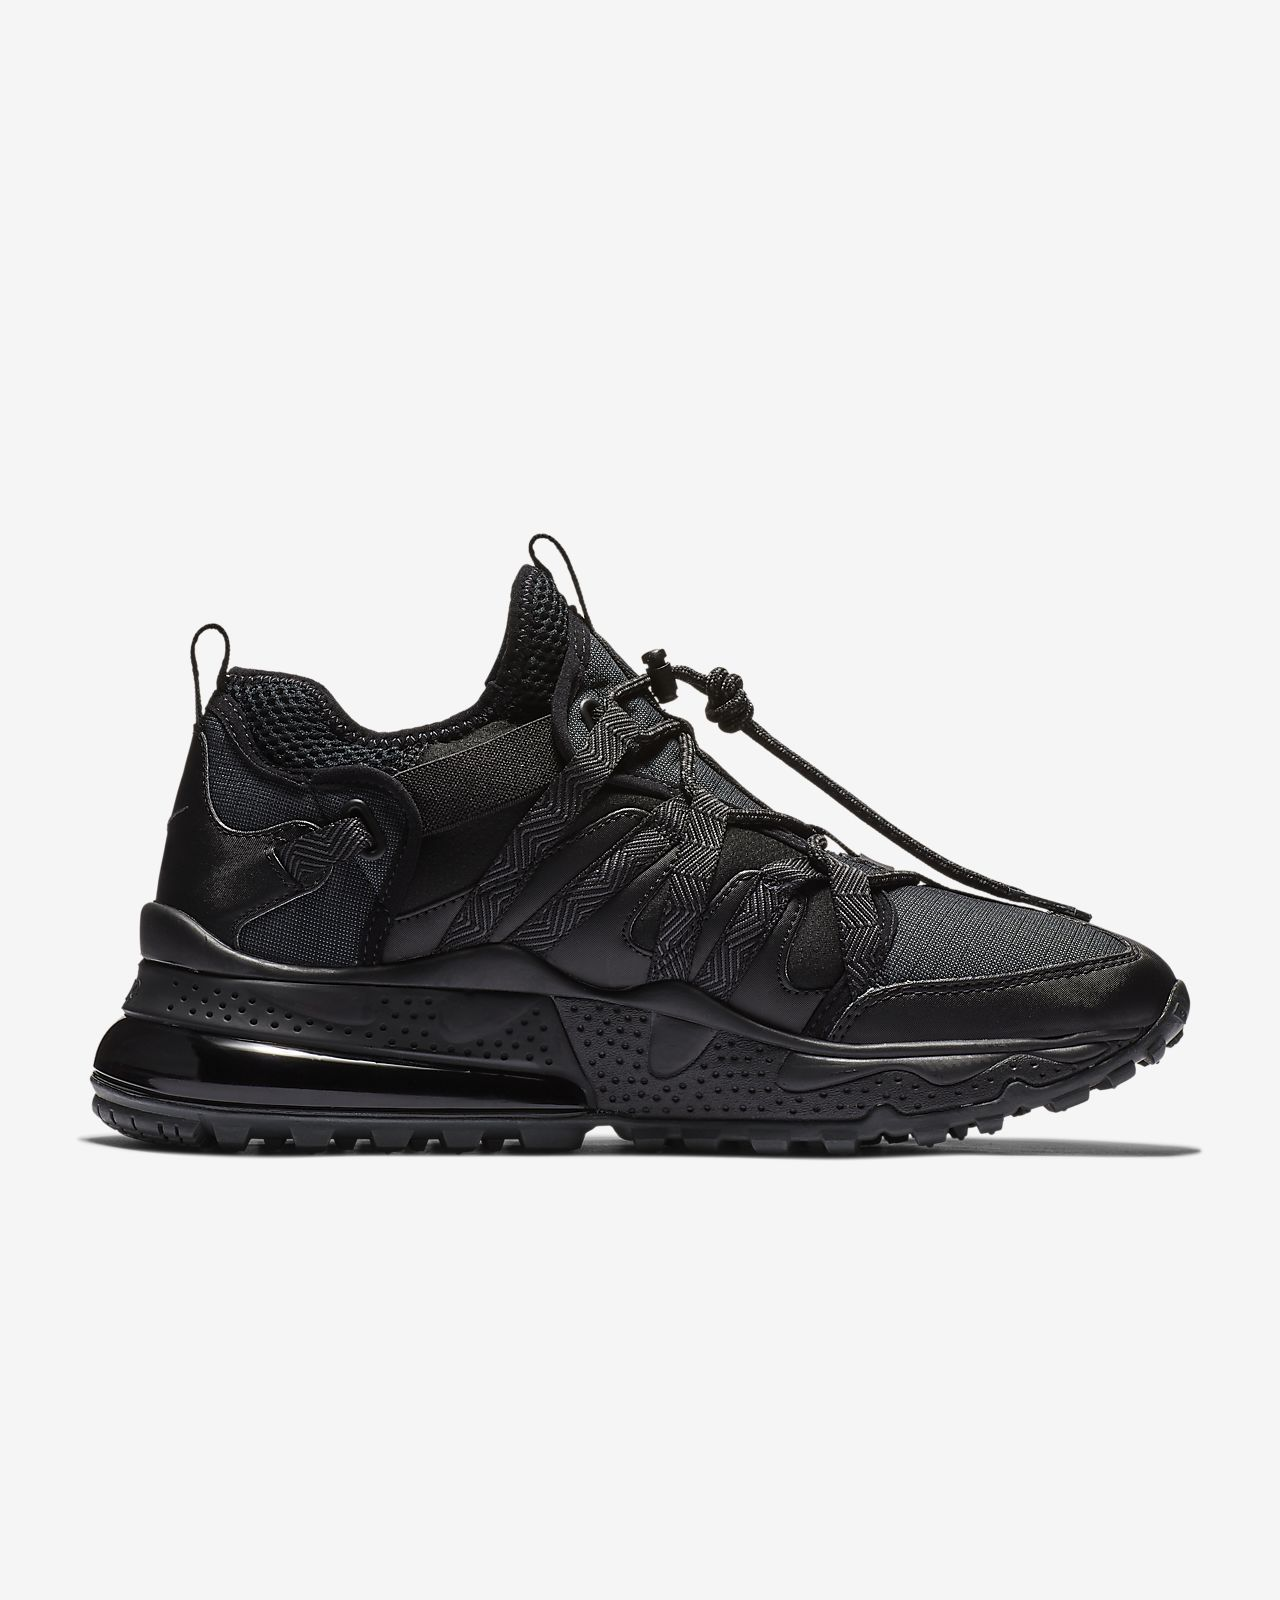 meet 8075f 9d879 ... Nike Air Max 270 Bowfin Men s Shoe